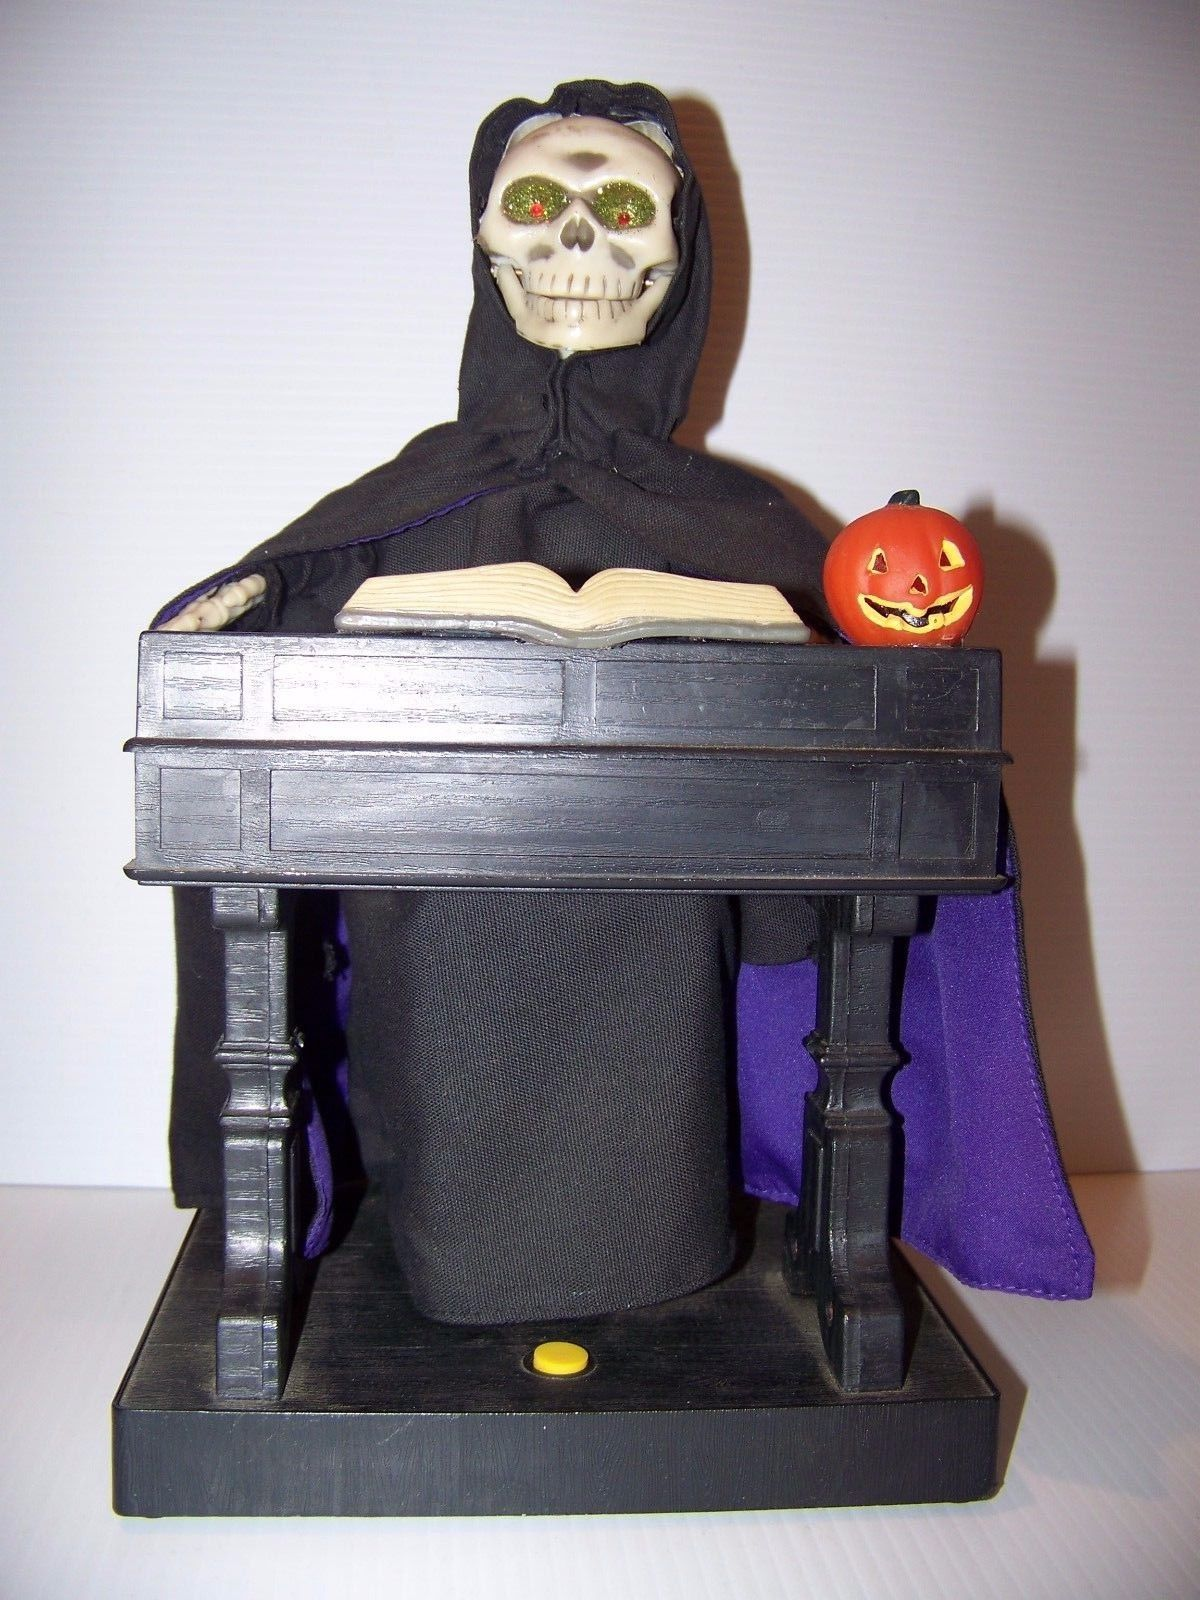 animated grim reaper playing organ piano vtg gemmy halloween great balls firejpg - Www Gemmy Com Halloween